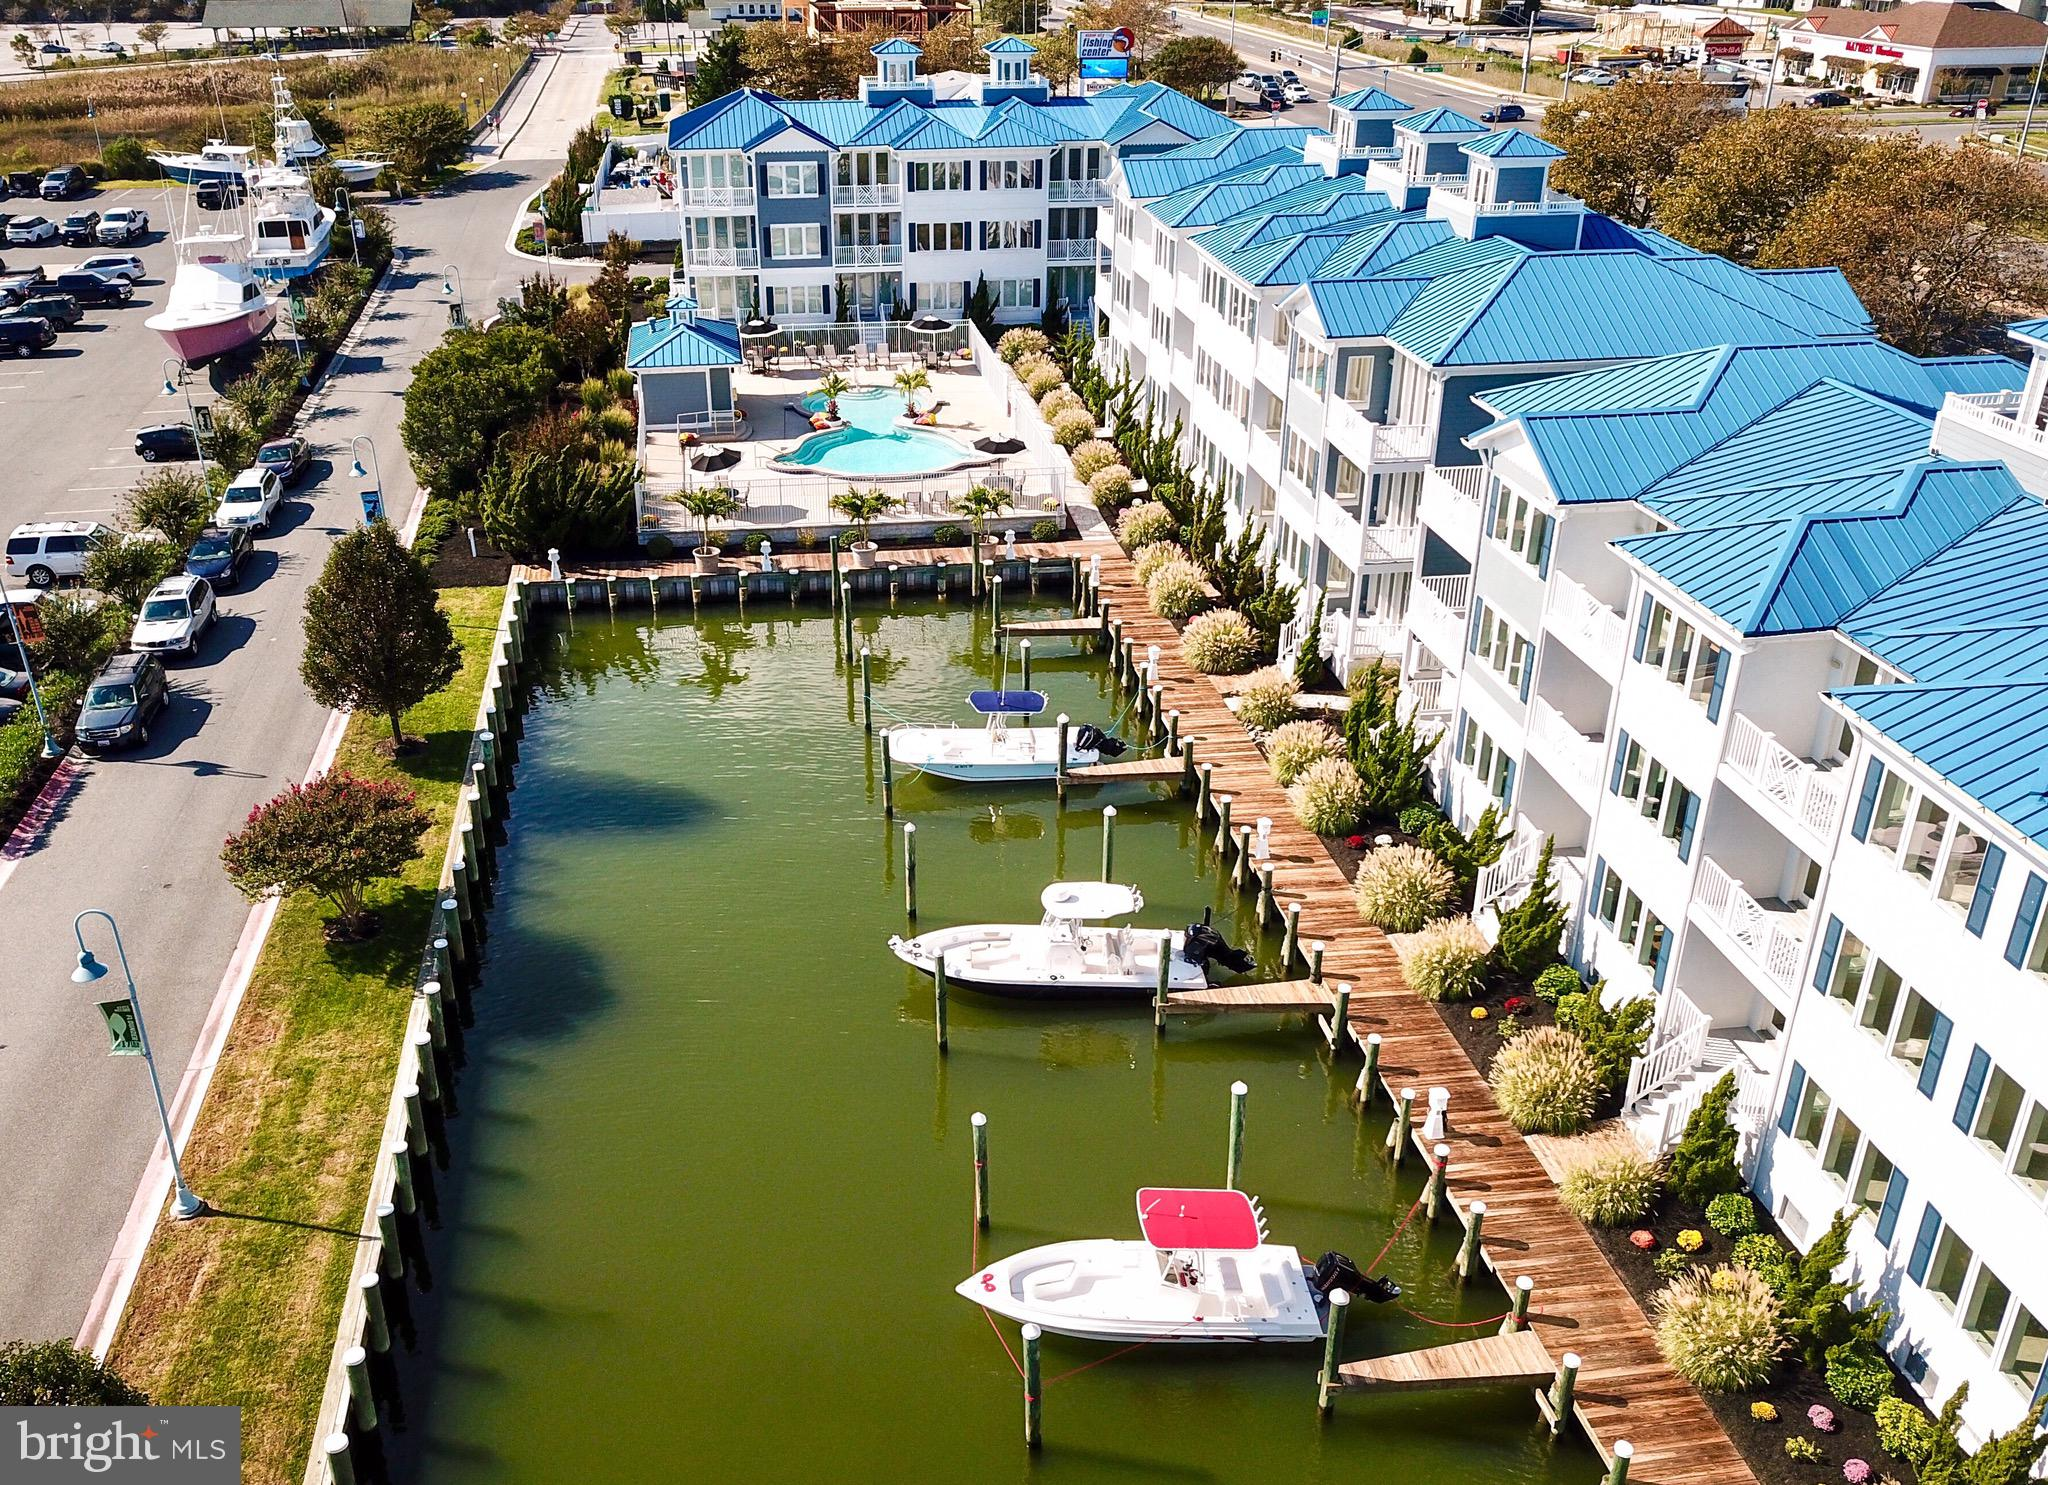 """When nothing but the best will do - The Villas at Inlet Isle is the place for you.  PRIME WEST OCEAN CITY LOCATION!!! Only a few units left.   Luxury 3,069  sq. ft. solid concrete block constructed  townhomes with soundproof windows and doors,   3 spacious bedrooms and 4 full baths,  large boat slip, private elevator, two car garage, soaring 9 ft. ceilings with tall windows throughout, outdoor living area on every level, large master ensuite with sitting area, his and hers large walk-in closets, spa like  master bath.   Southern exposed heated community pool w/bathhouse & outdoor shower, and much more. This unit is ready for immediate delivery.  List price does not include furnishings. Furnishings can be purchased from BRF at closing.  The units at The Villas at Inlet Isle are an absolute must see.    More details about the project can be found on  fb at  """"The Villas at Inlet Isle, Ocean City,  MD""""  (PLEASE BEWARE -  websites you may find online offering information about the Villas at Inlet Isle are not authentic to the project and do not provide accurate or current information.)"""